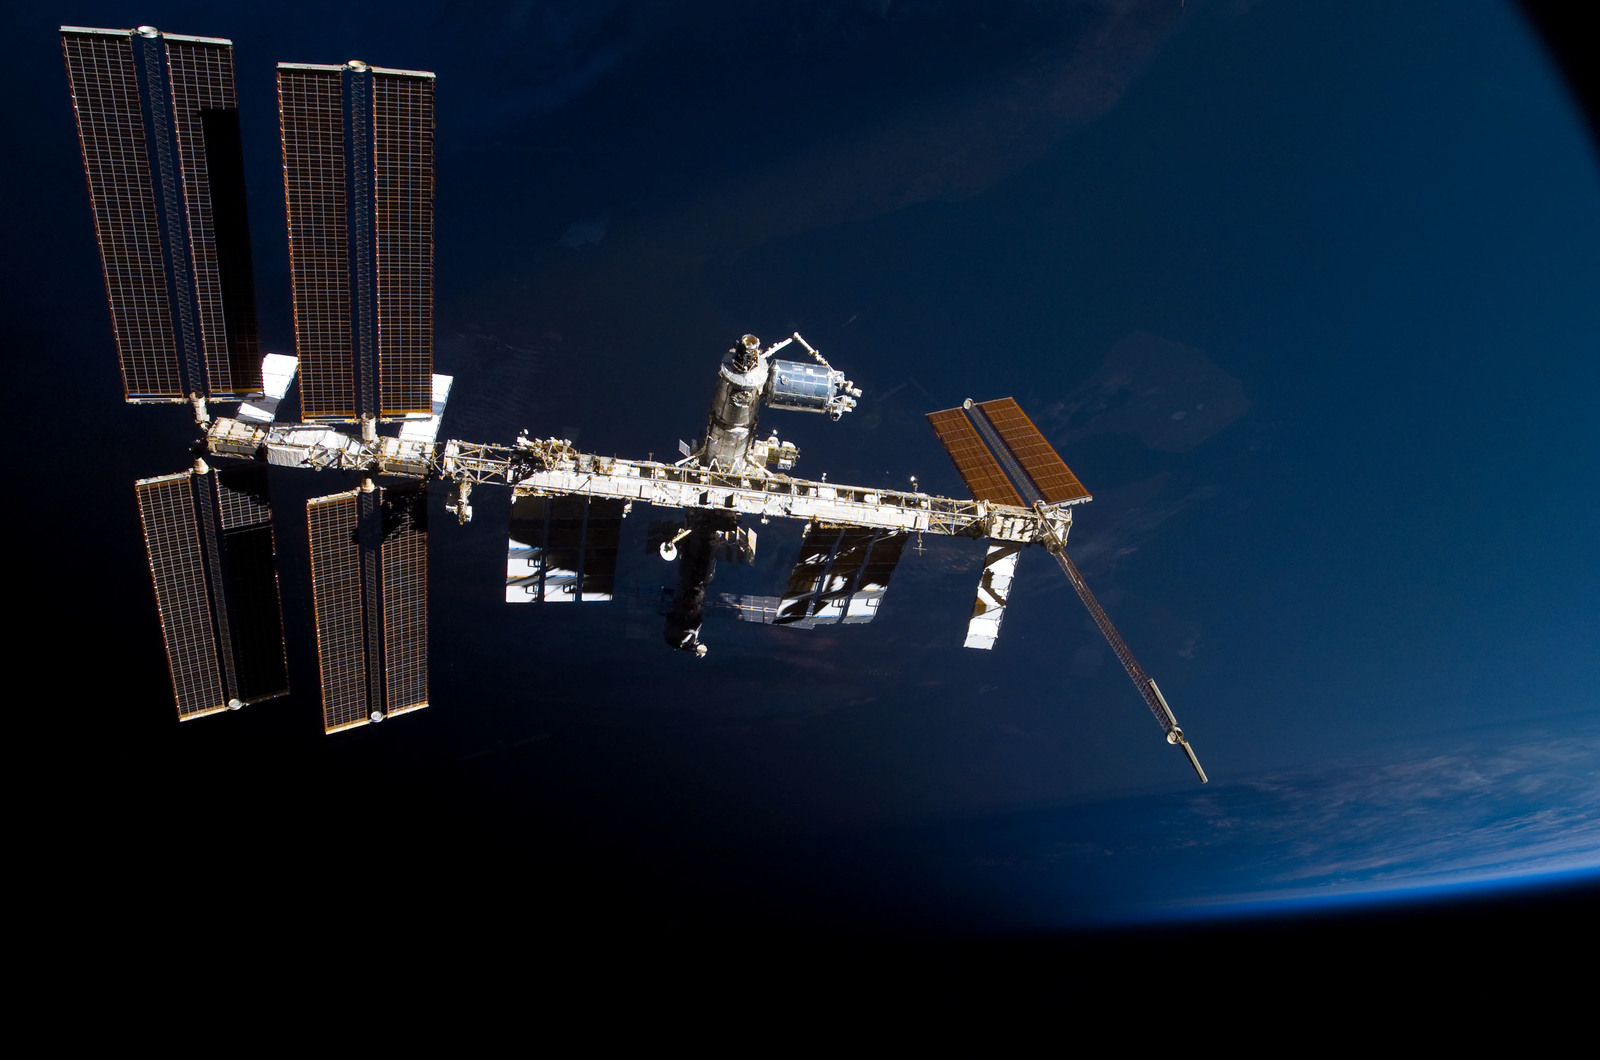 S122E009877 - STS-122 - View of ISS after STS-122 Undocking